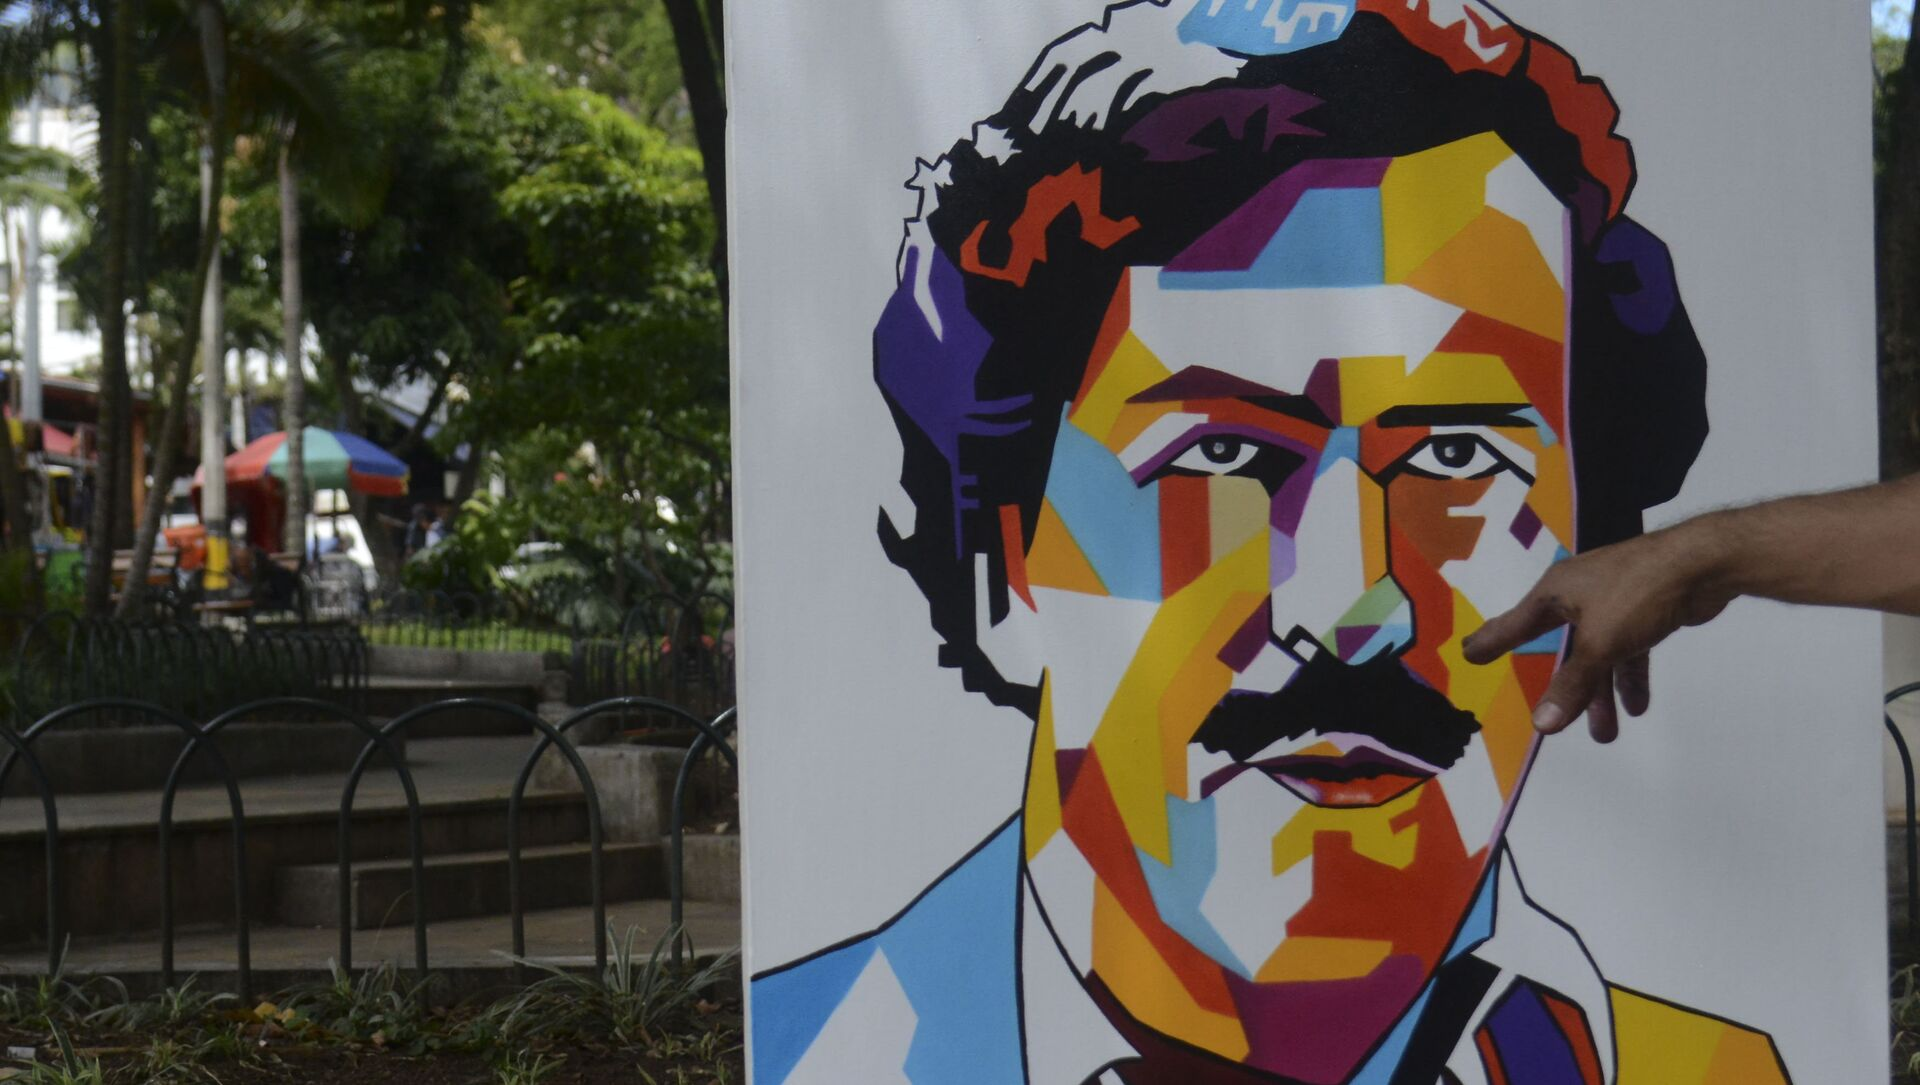 Paintings depicting late Colombian drug lord Pablo Escobar are on display at Lleras Park in Medellin - Sputnik Mundo, 1920, 24.09.2020